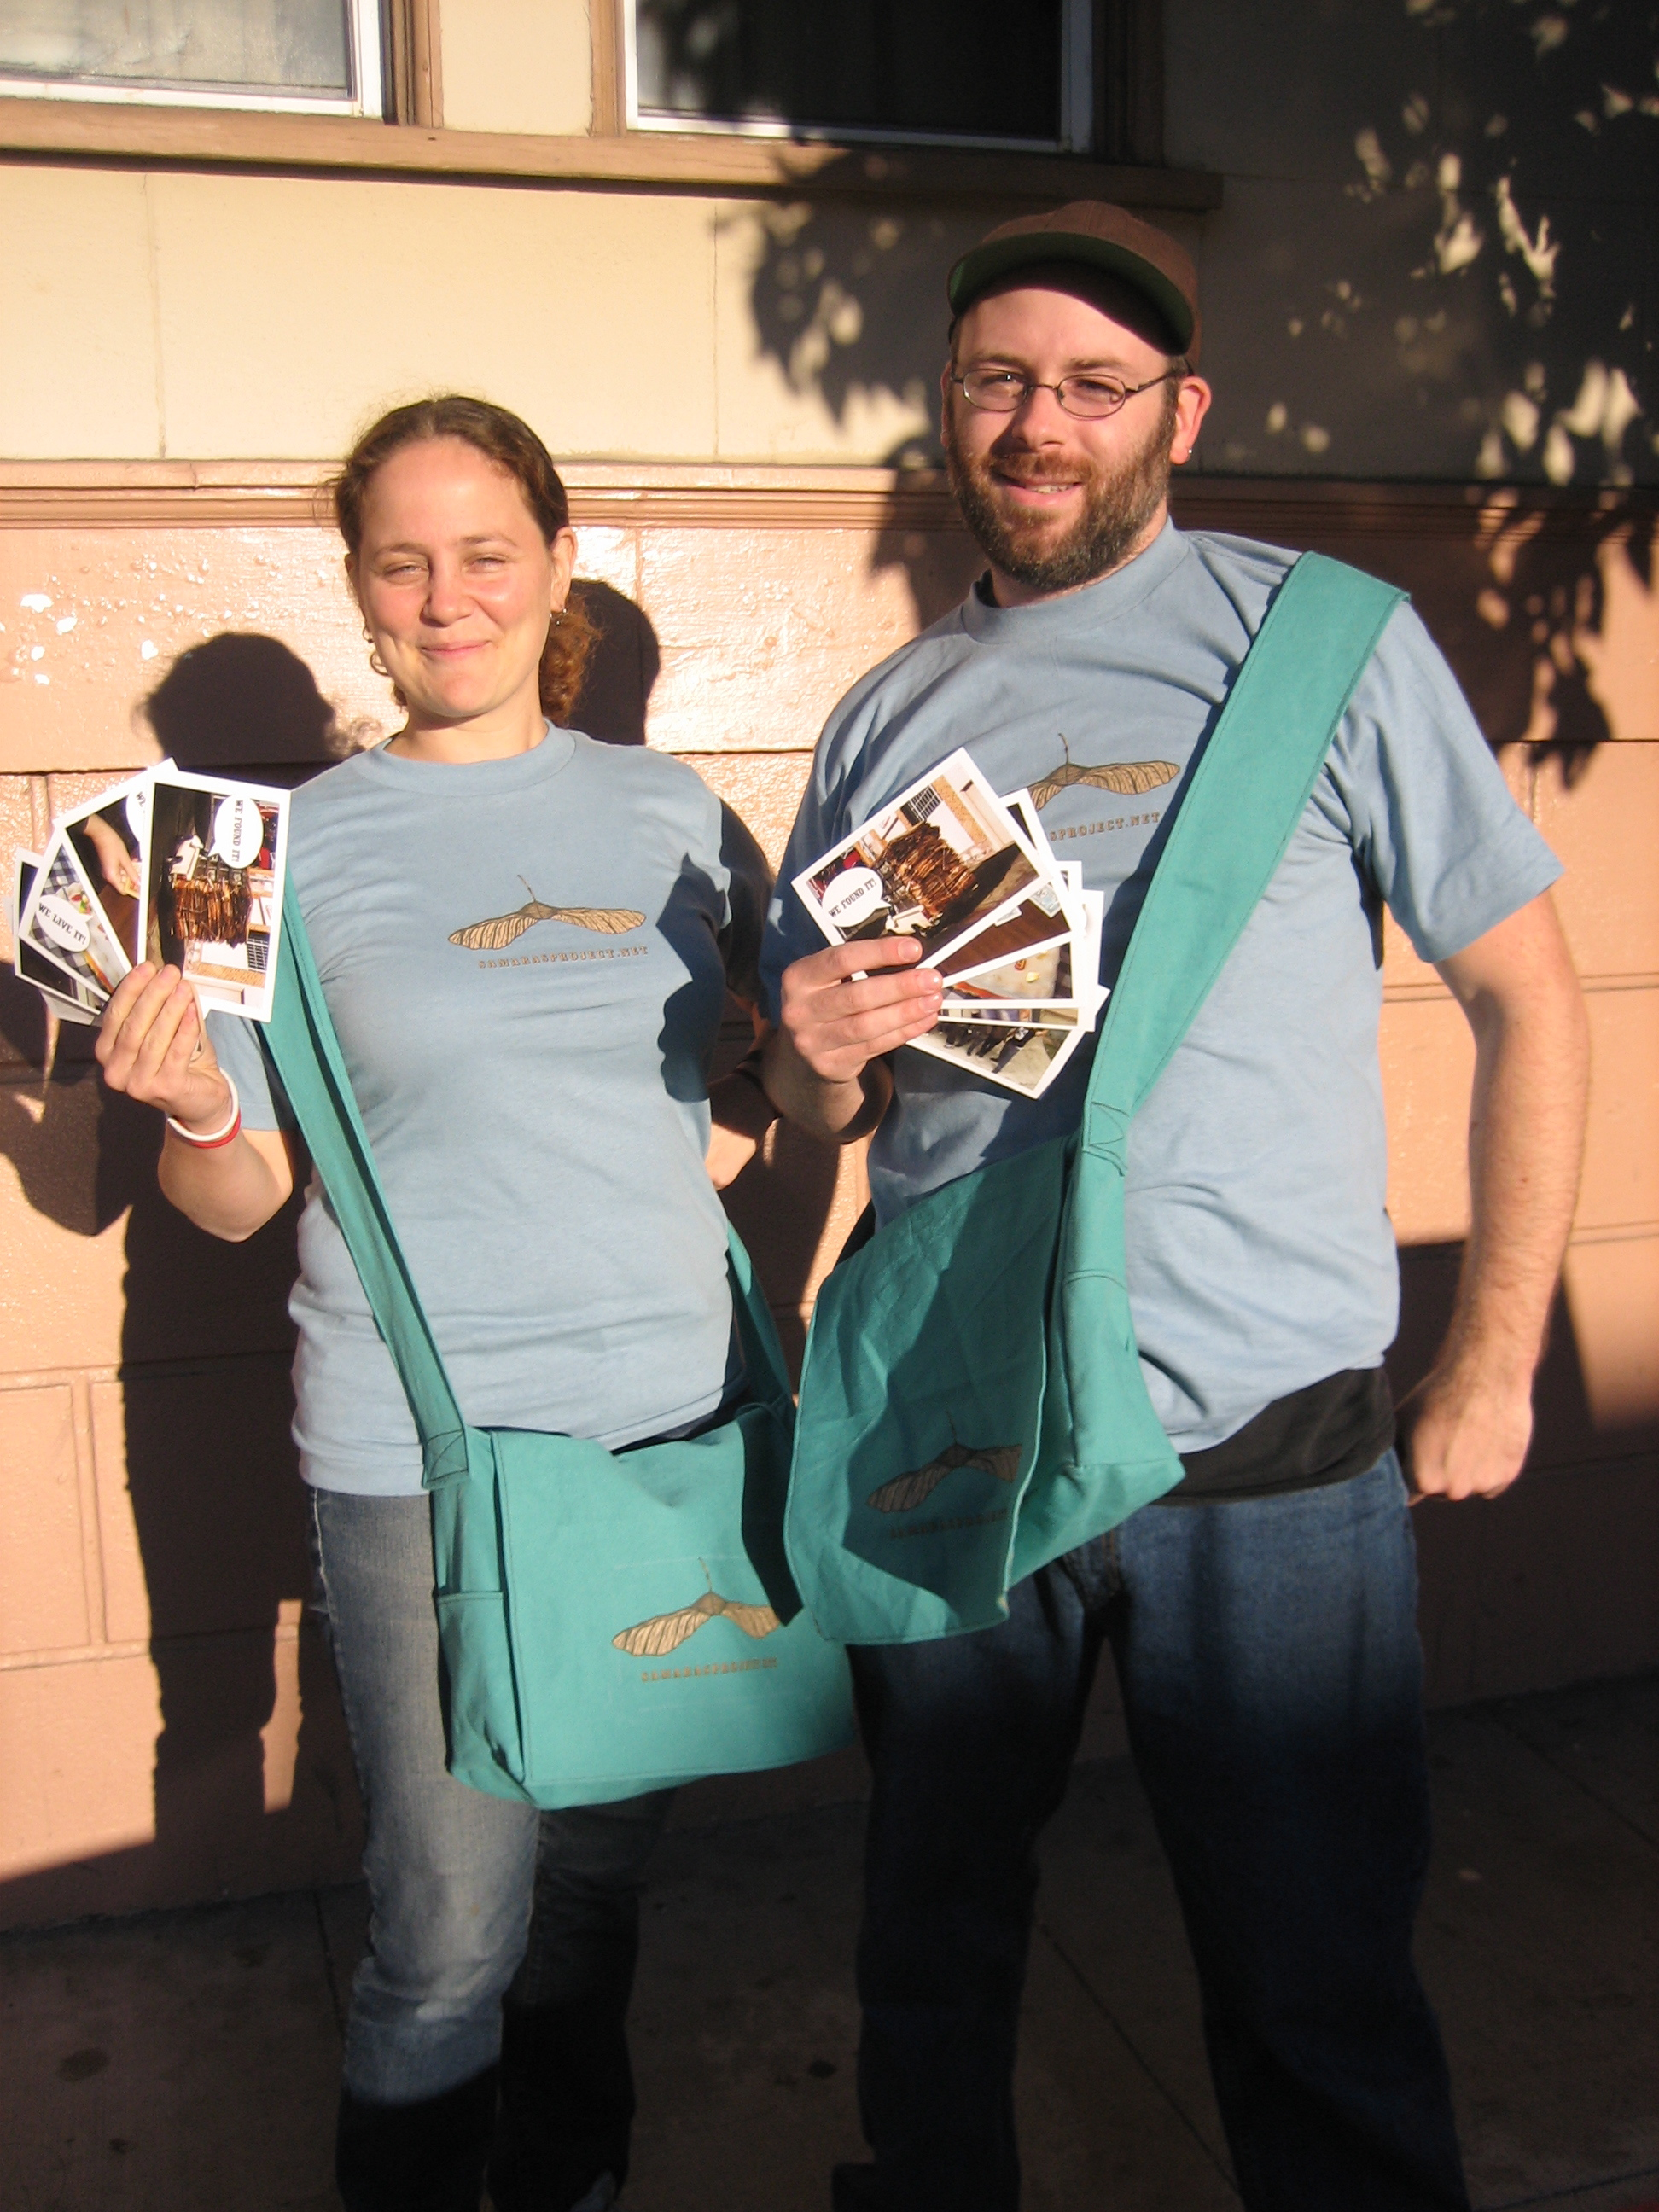 Josh MacPhee and Dara Greenwald modeling the Samaras Project Street Team gear